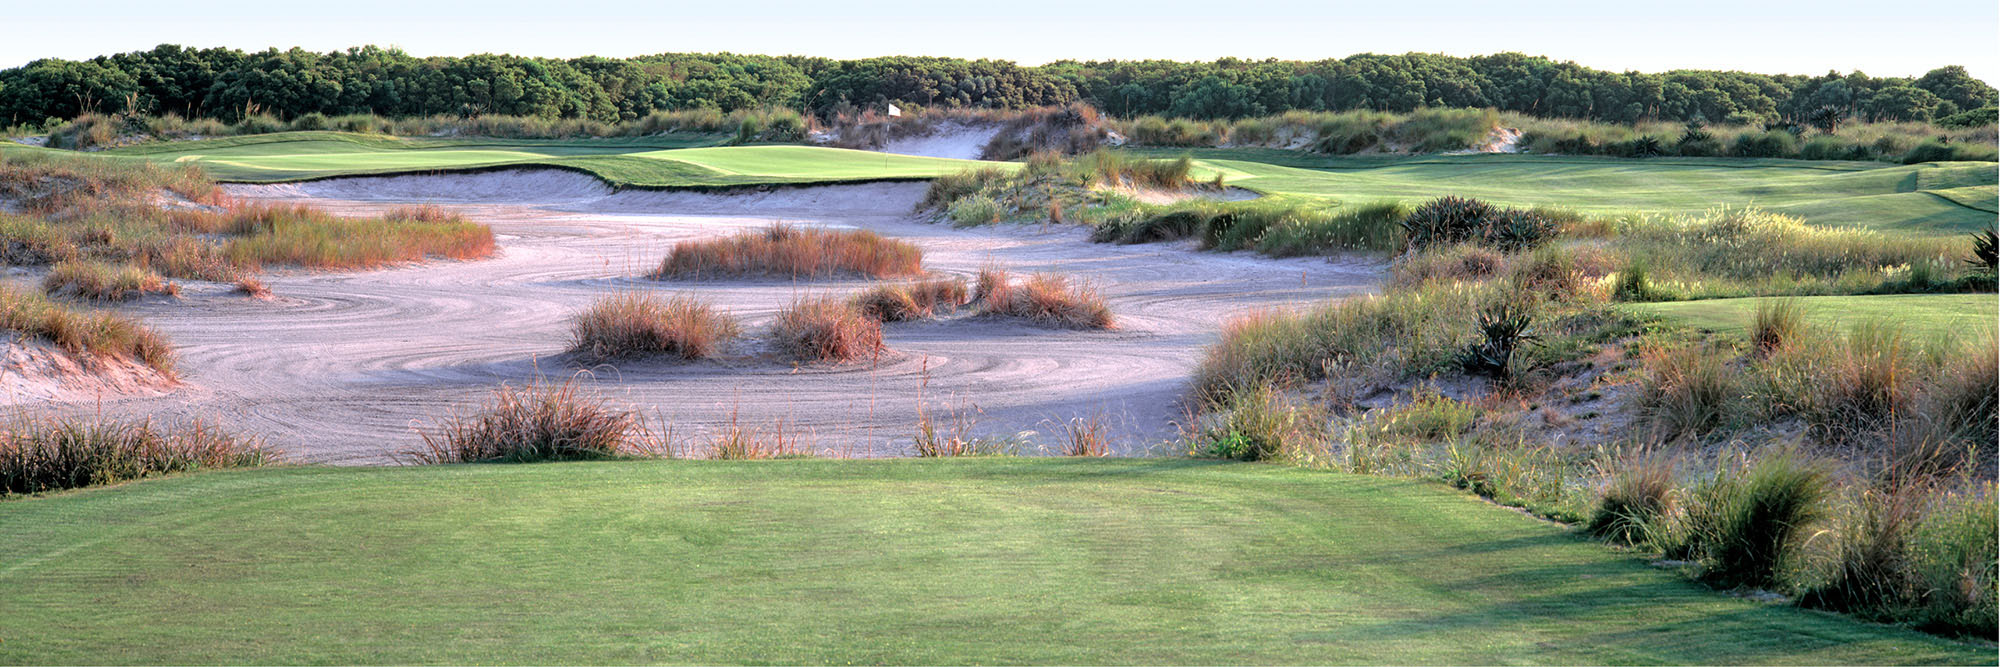 Golf Course Image - Kiawah Ocean Course No. 5